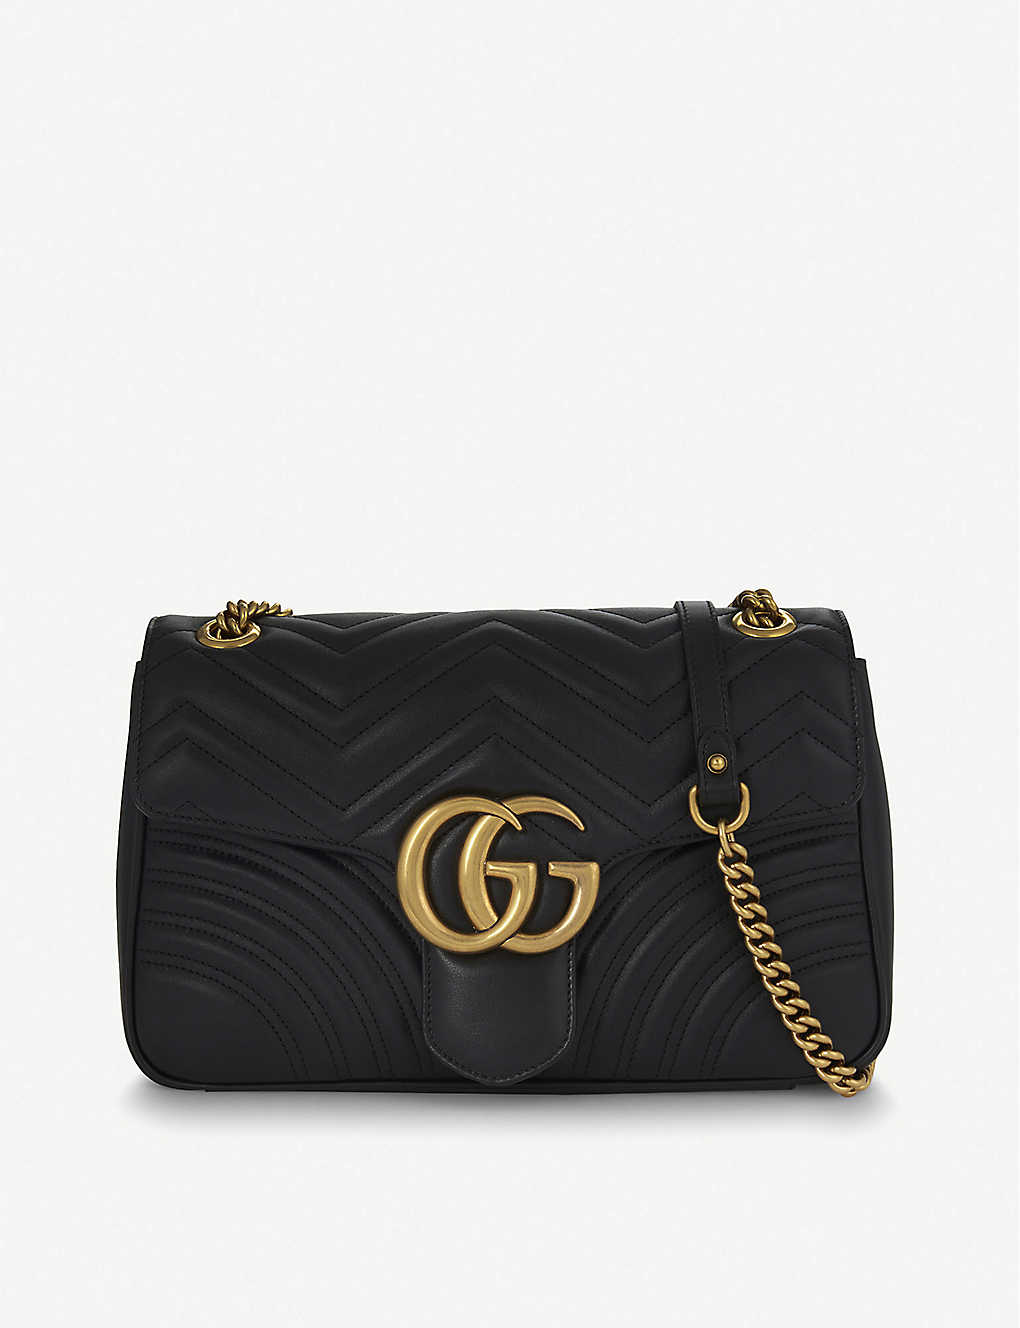 2540b389d7ac GUCCI - GG Marmont medium leather shoulder bag | Selfridges.com